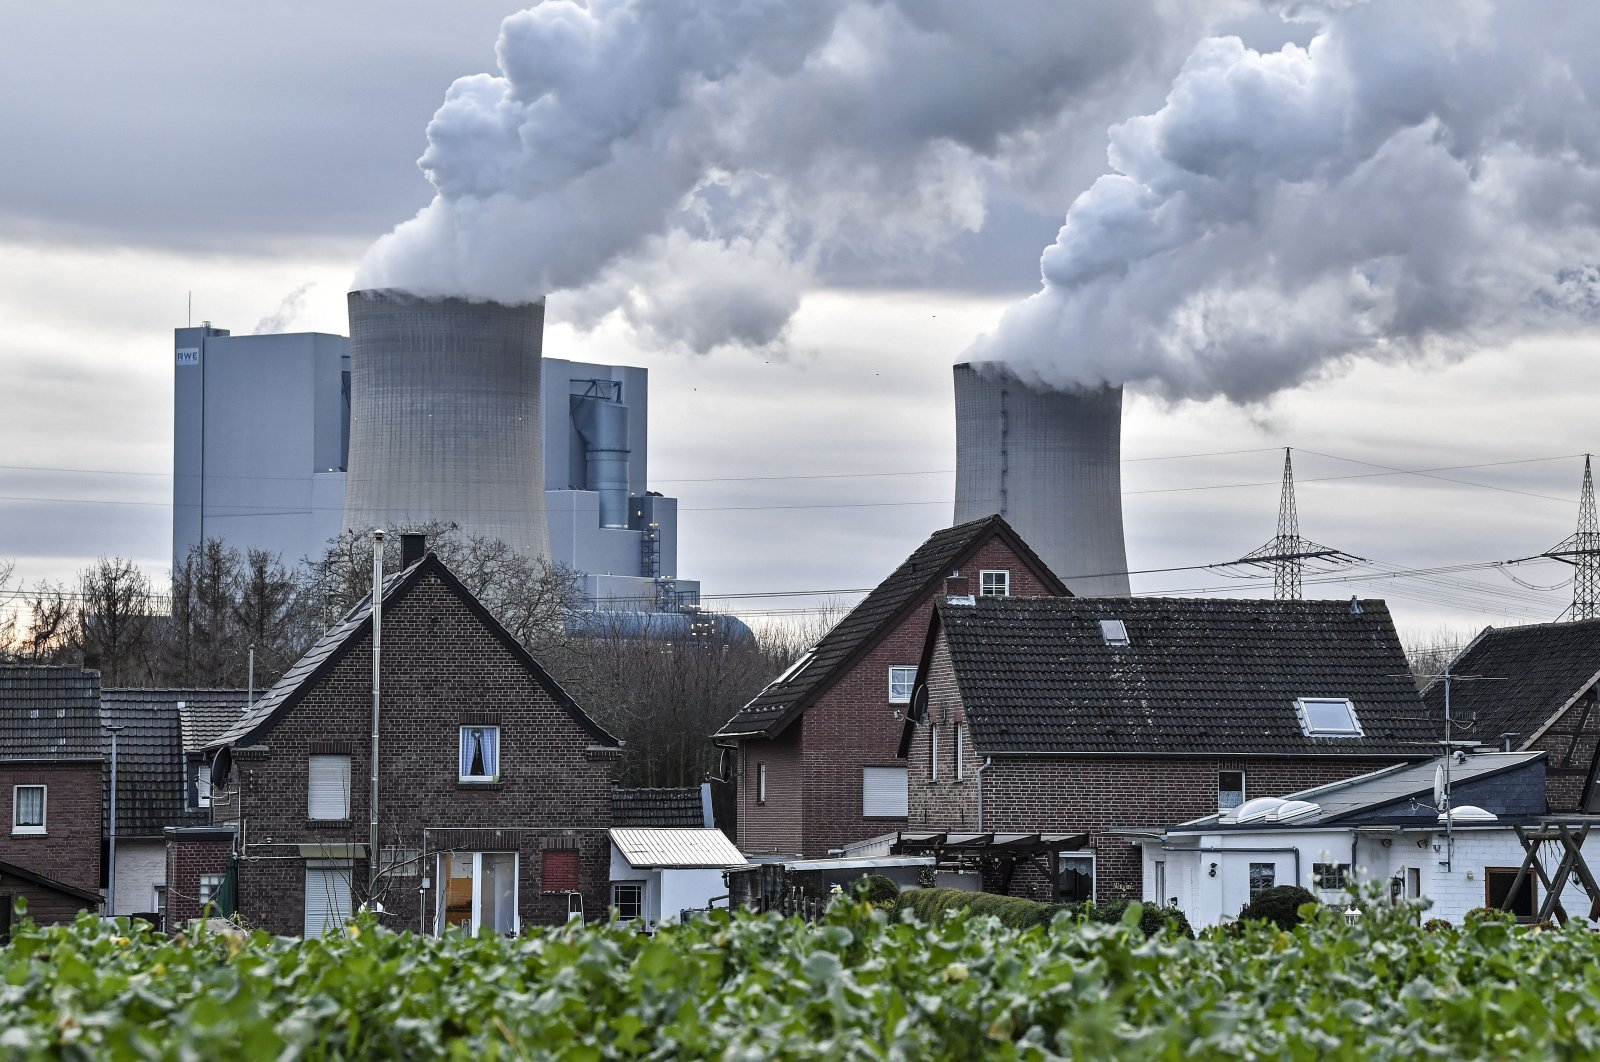 The RWE lignite-fired power station releases steam in Bergheim, Germany, Jan. 13, 2020. (AP Photo)